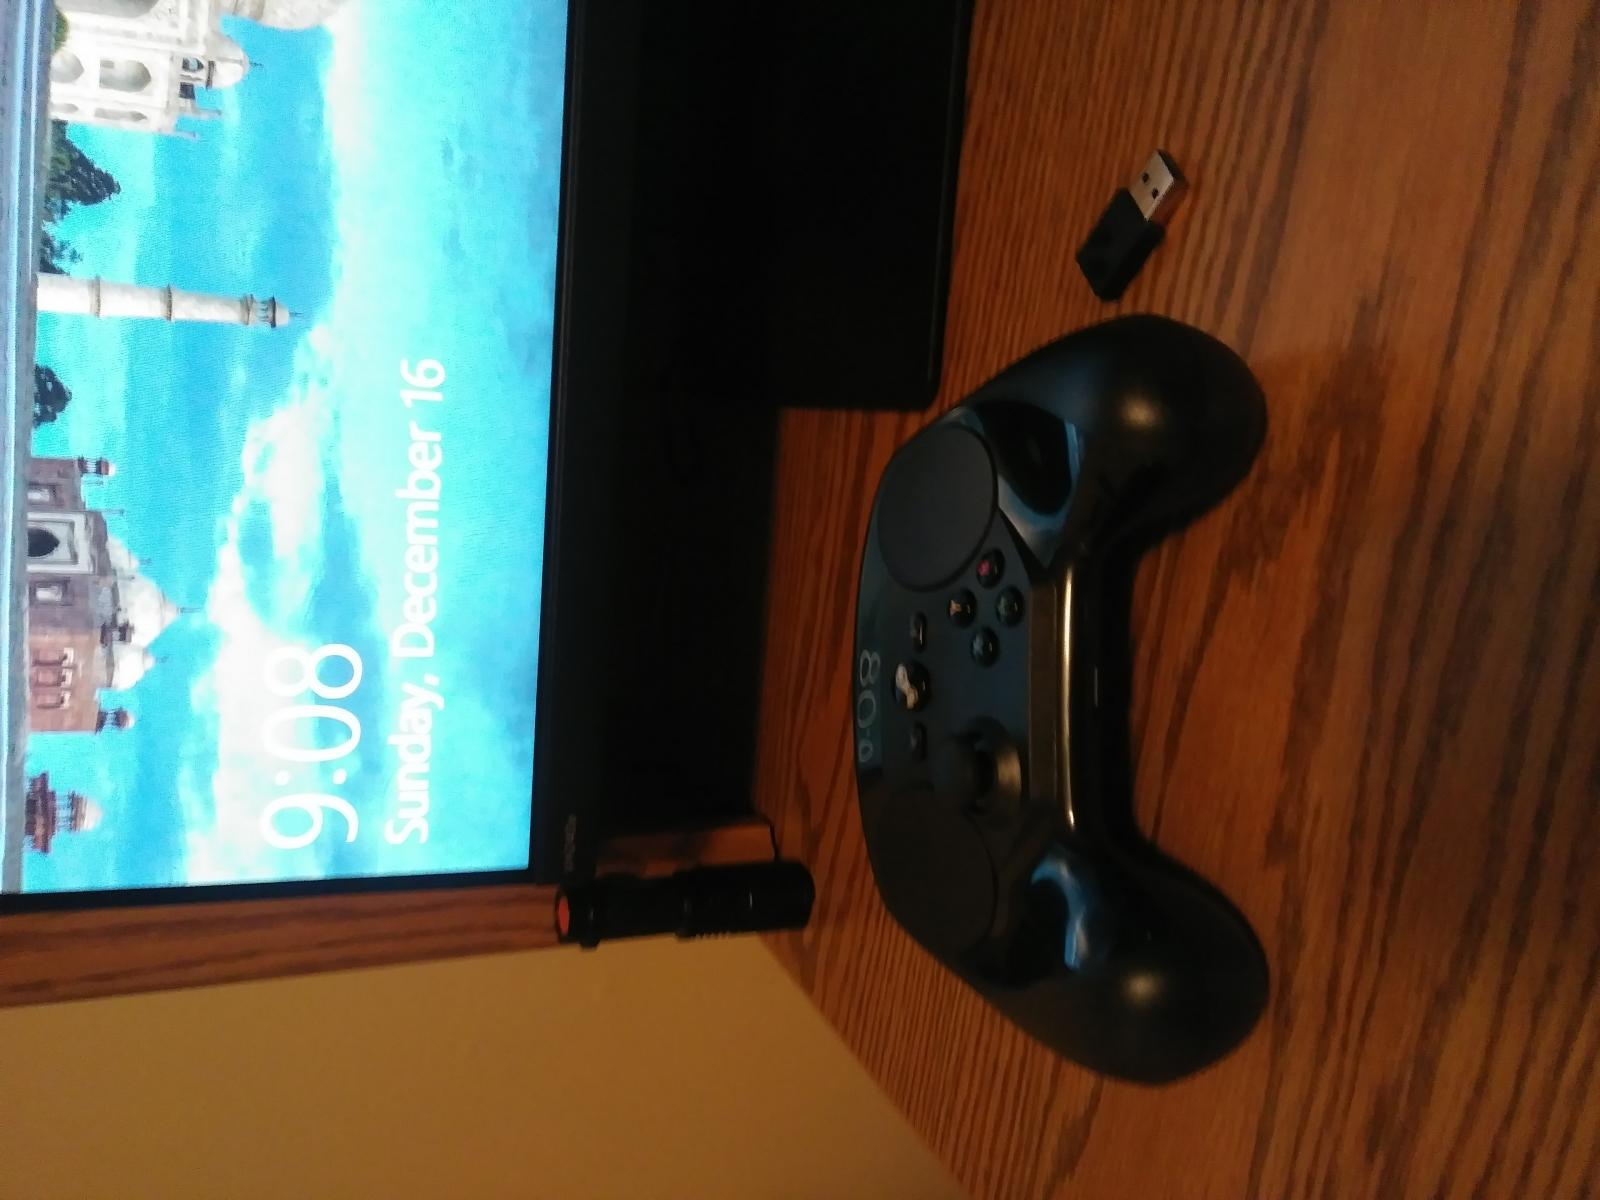 Photo of [H] Steam Link Controller [W] PS4 Controller